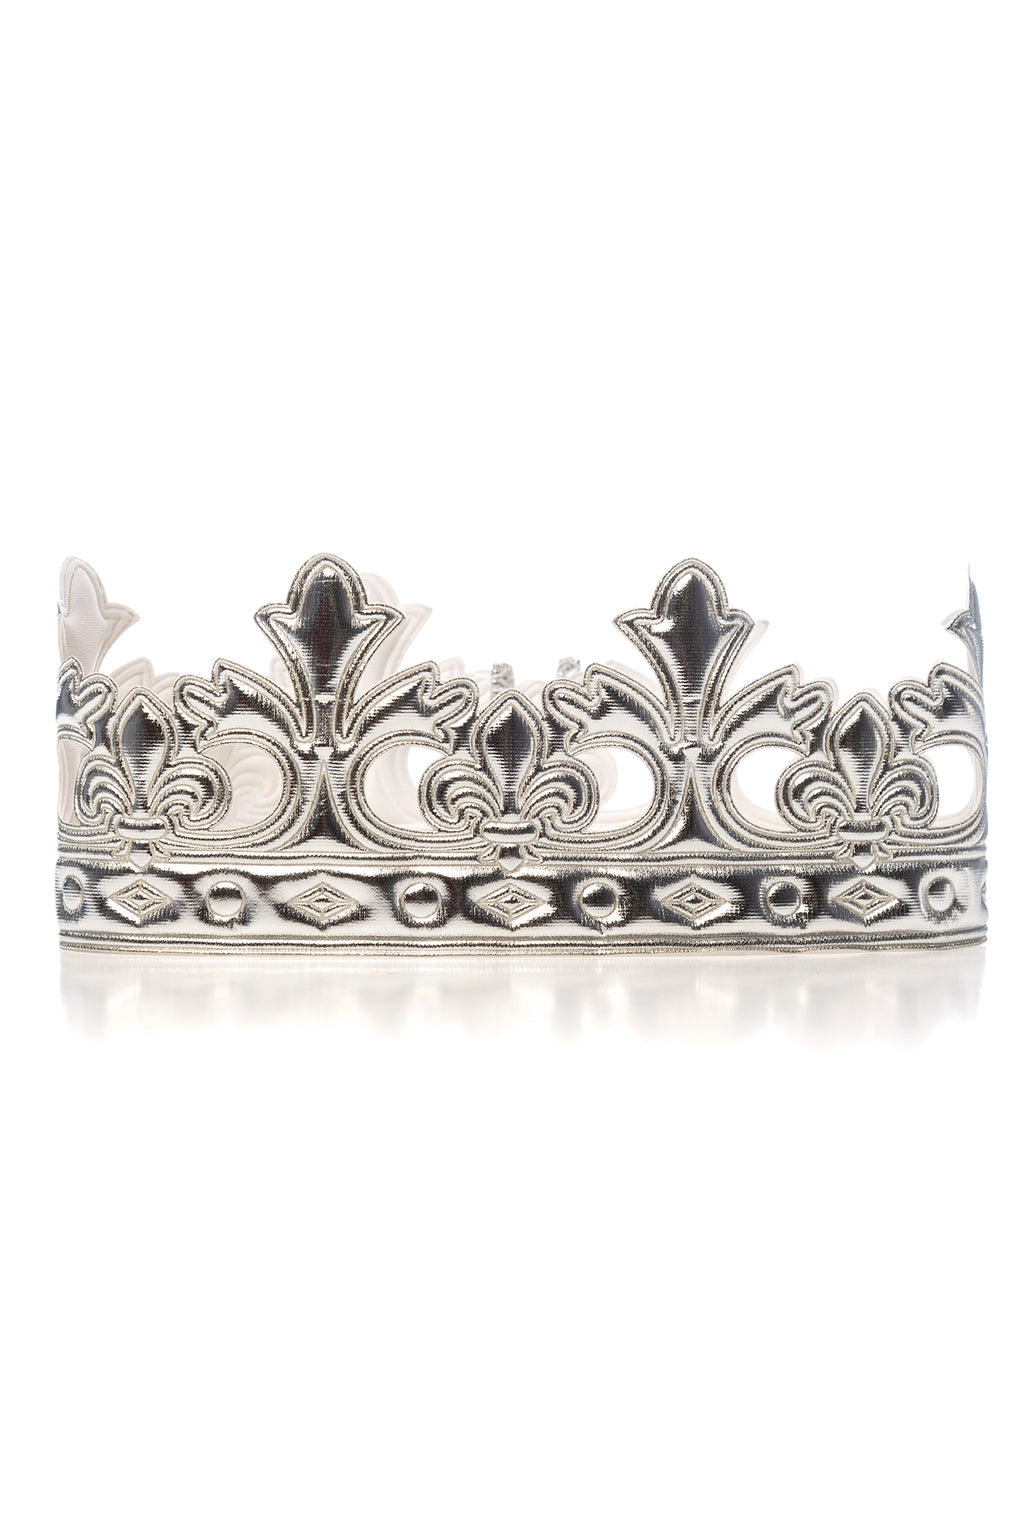 Prince Soft Crown Silver